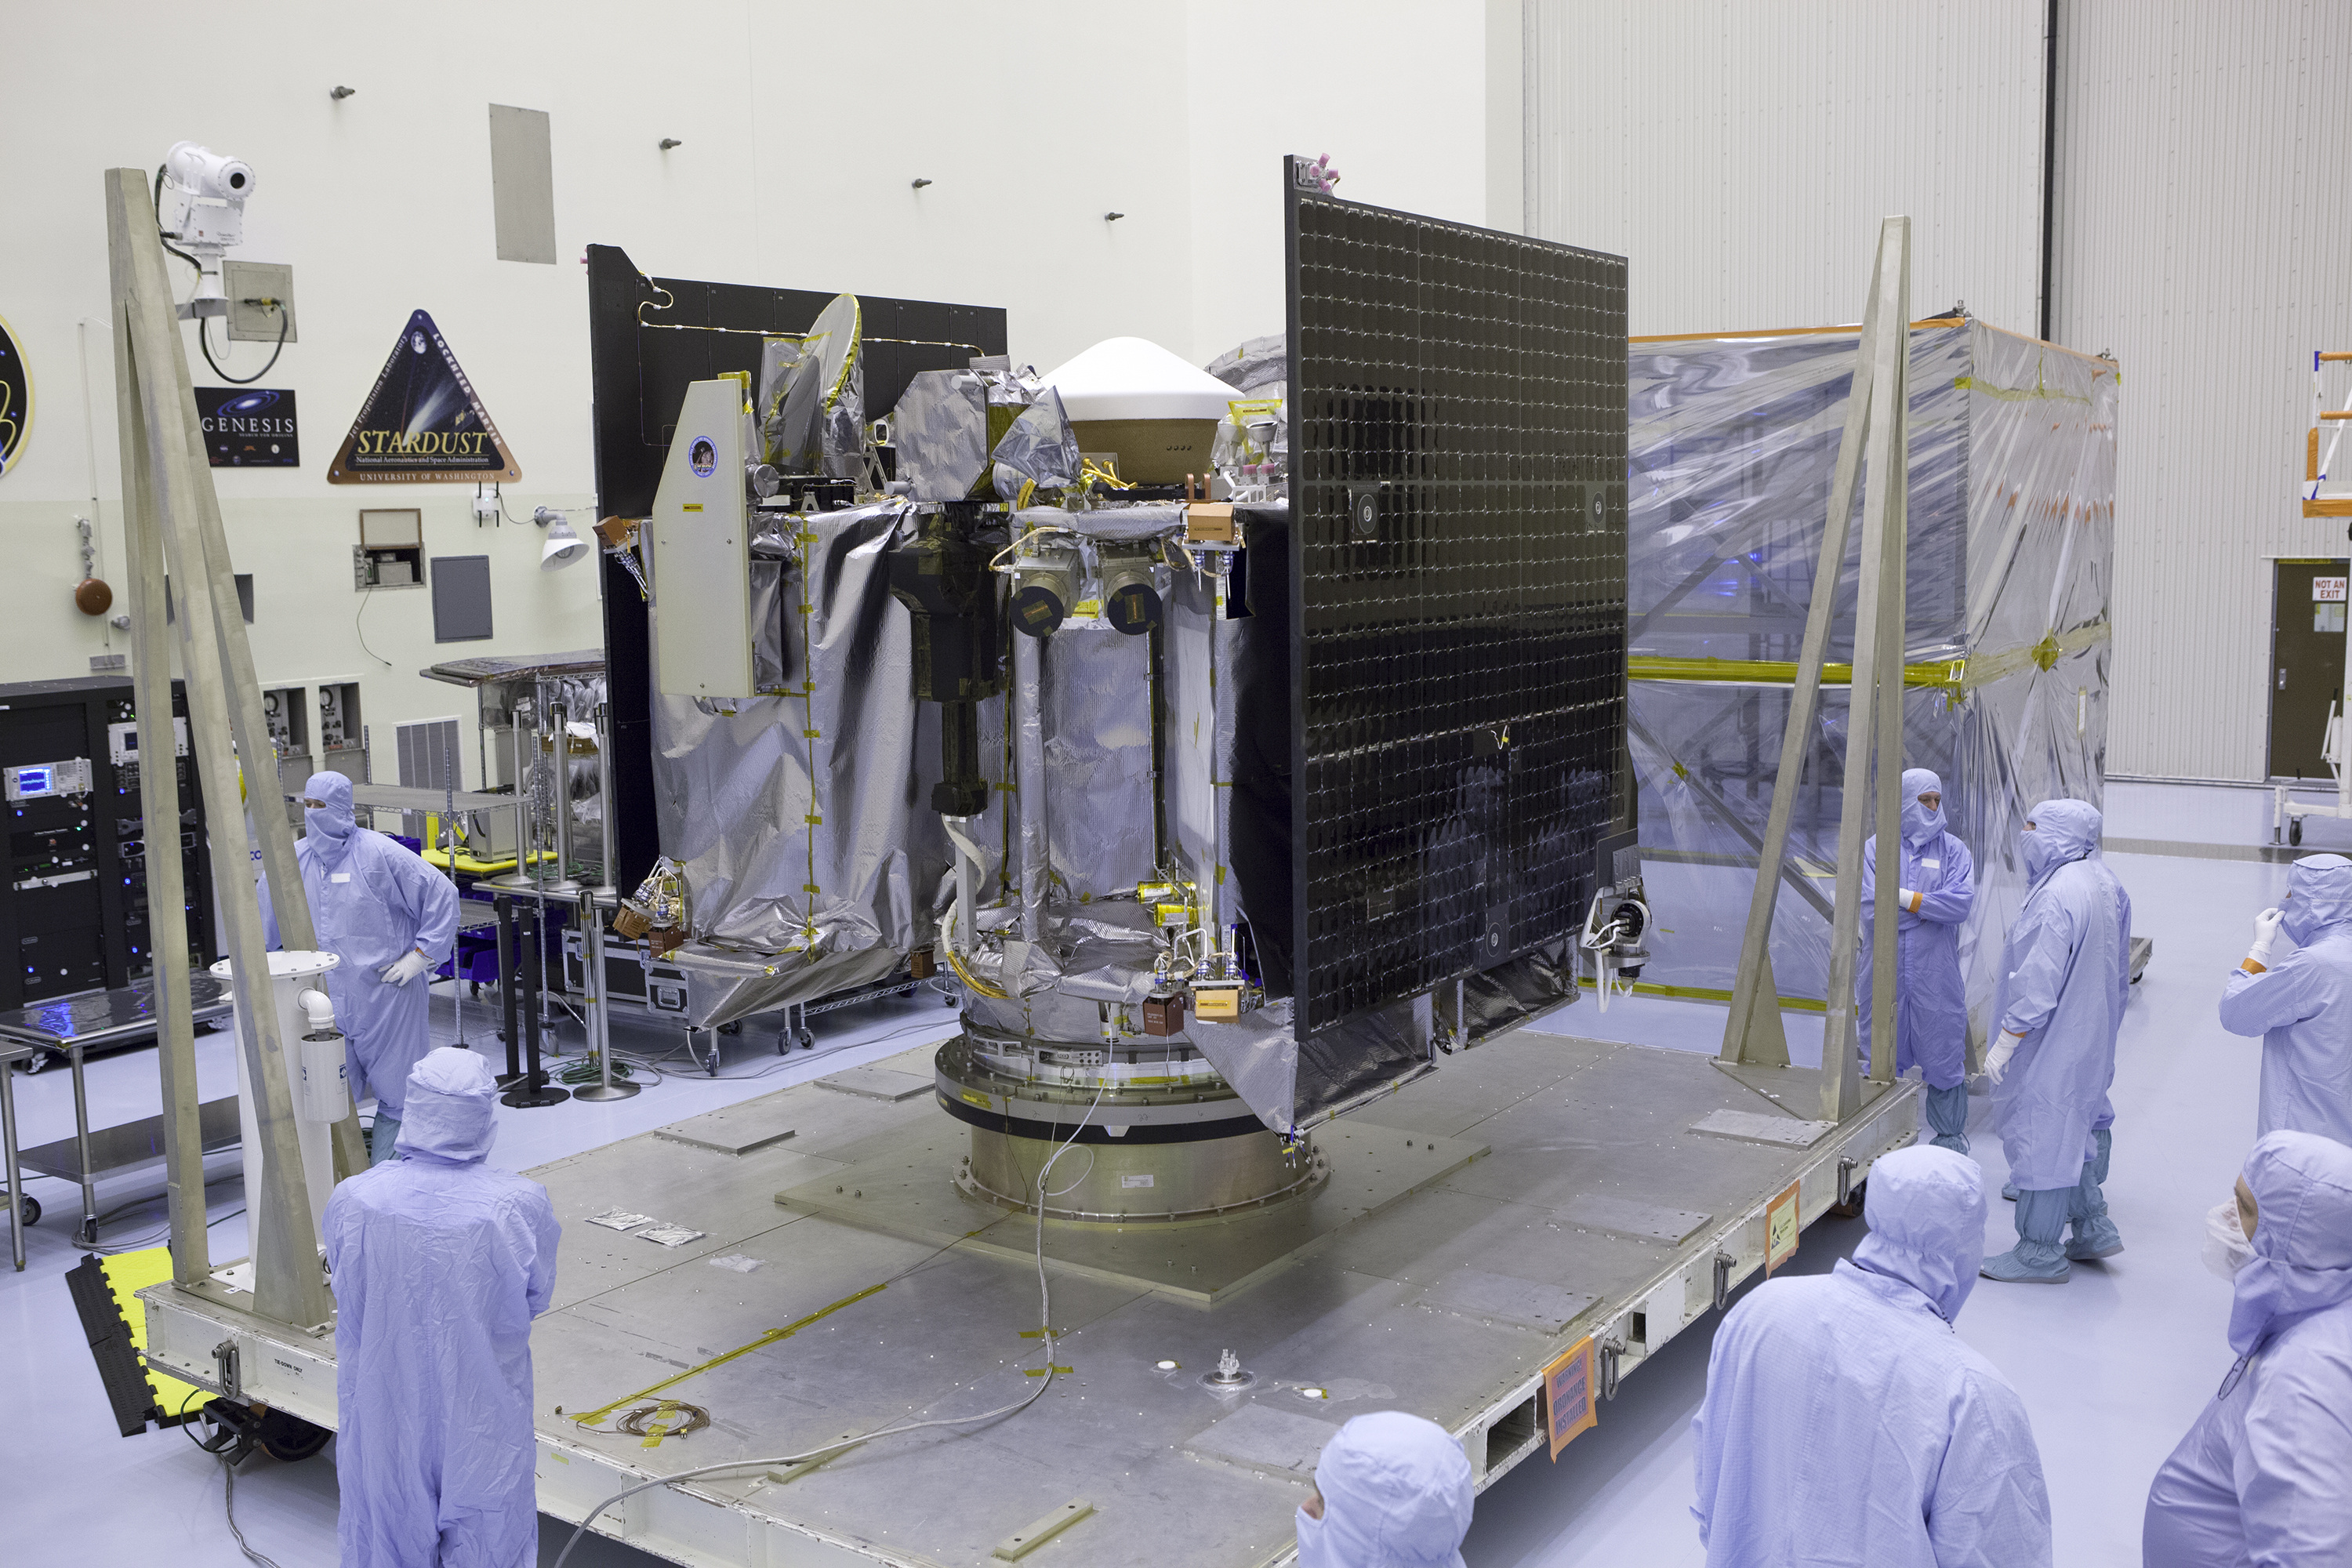 NASA's OSIRIS-REx spacecraft inside the Payload Hazardous Servicing Facility at Kennedy Space Center in Florida